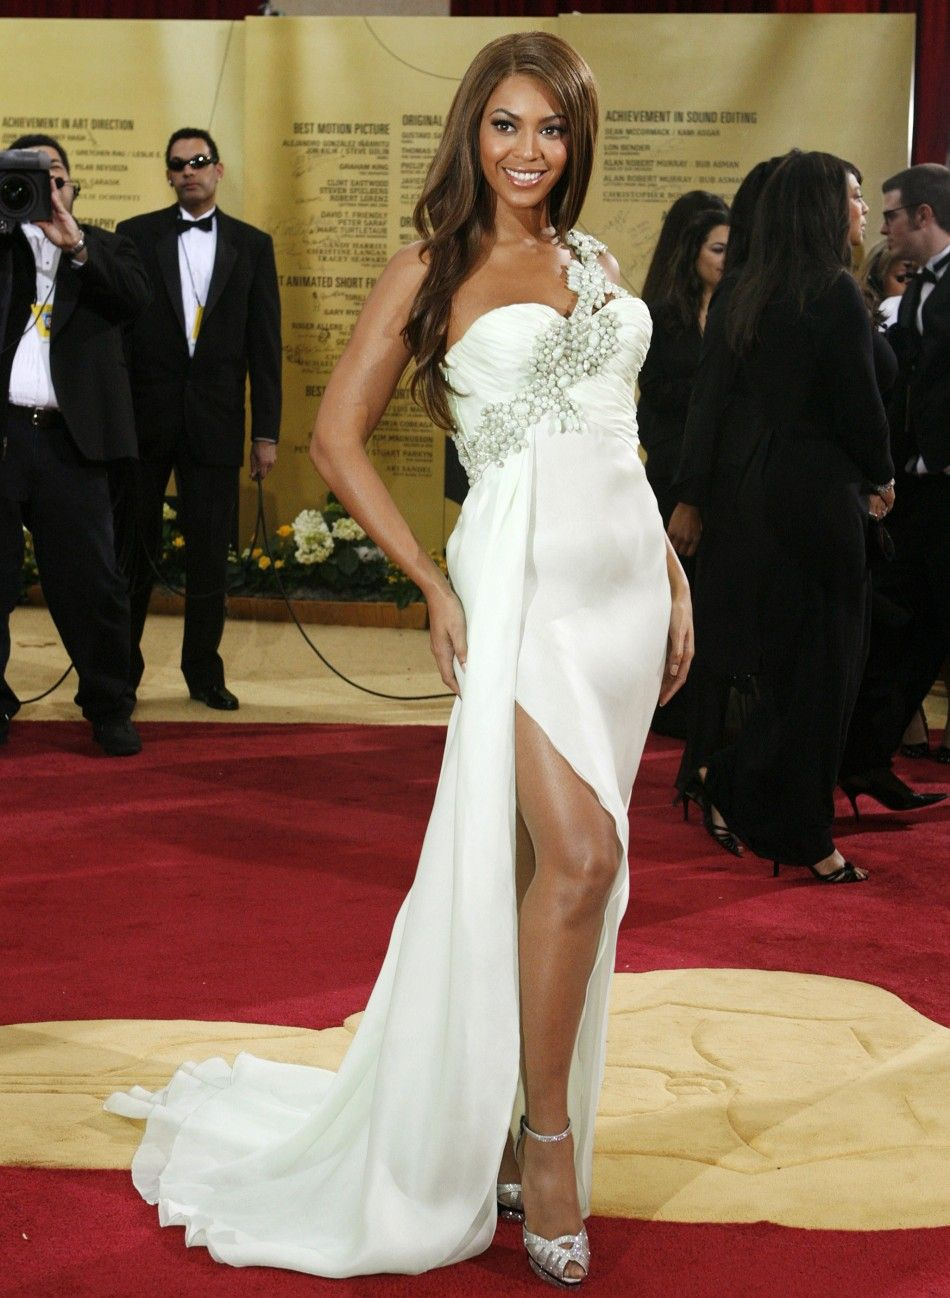 Oscar Awards Red Carpet Hottest Outfits In The Last Decade Dressed To Kill Photos Beyonce Dress Dresses Nice Dresses [ 1298 x 950 Pixel ]